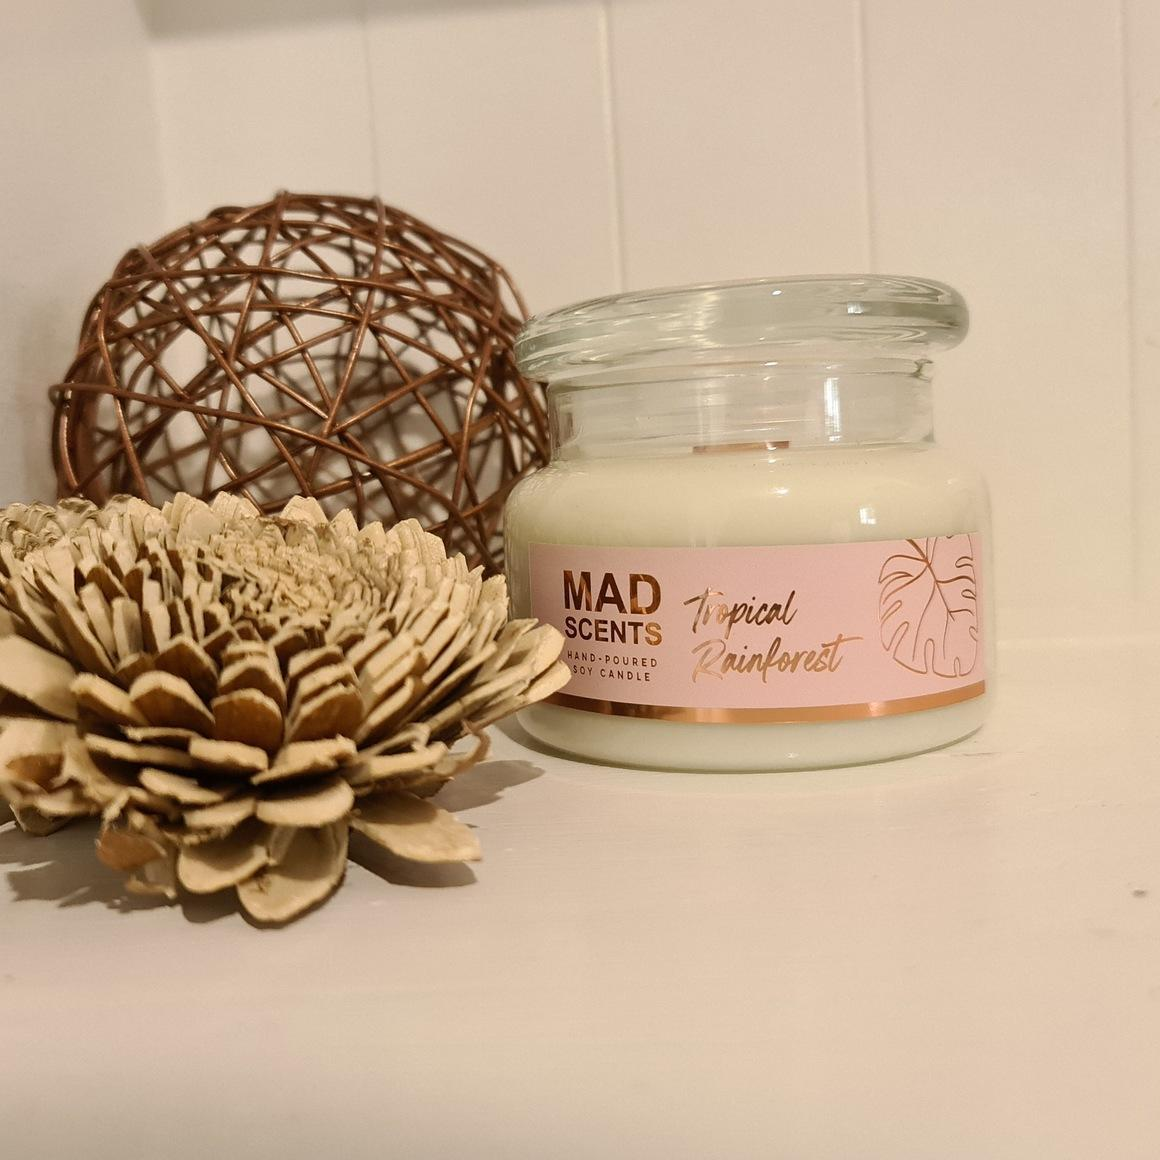 Tropical rainforest wood wick candle | Trada Marketplace